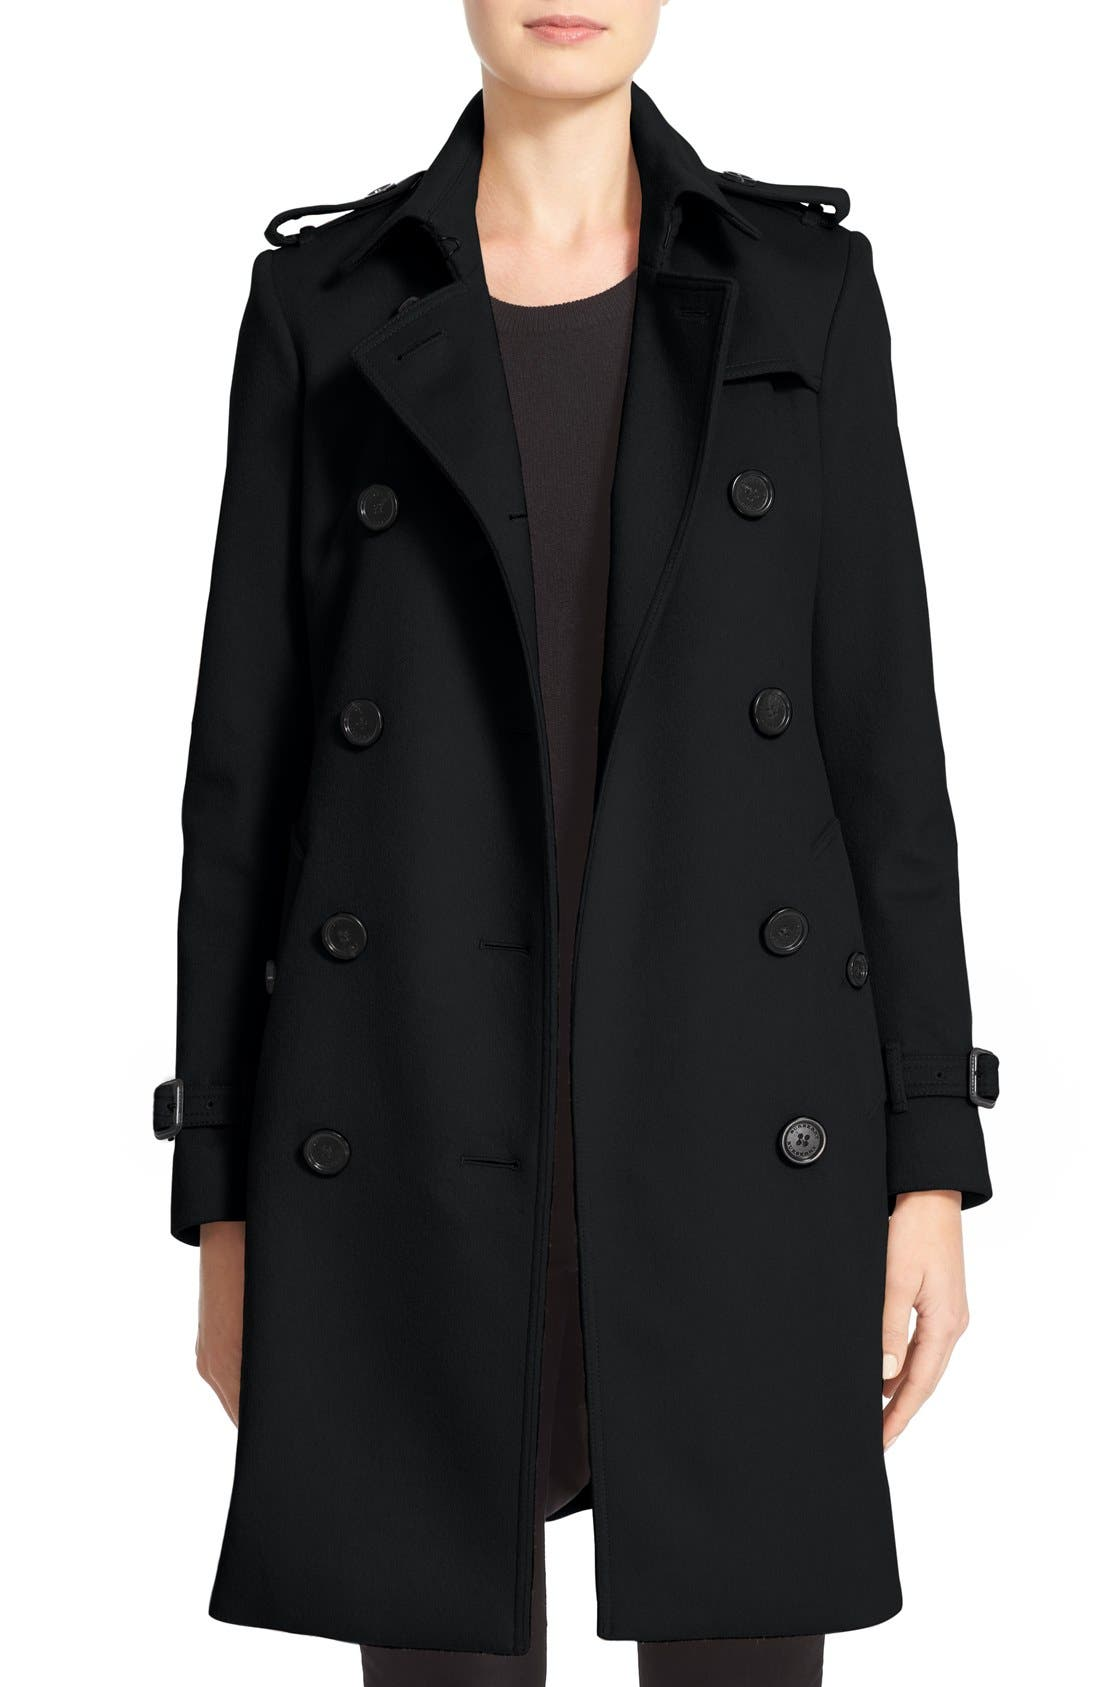 Kensington Double Breasted Wool & Cashmere Trench Coat,                         Main,                         color, Black